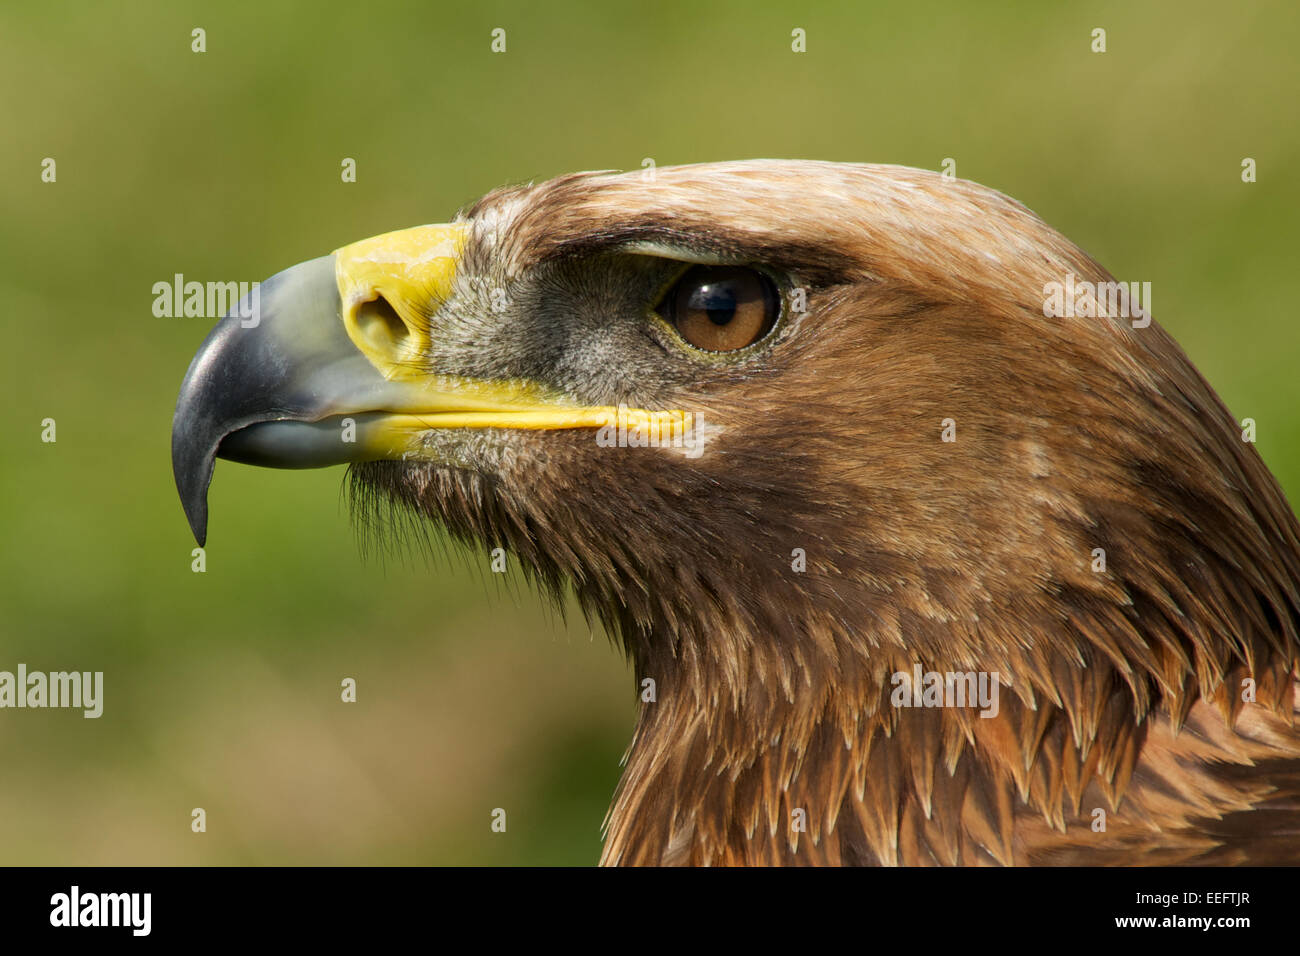 Close-up of golden eagle head with catchlight - Stock Image